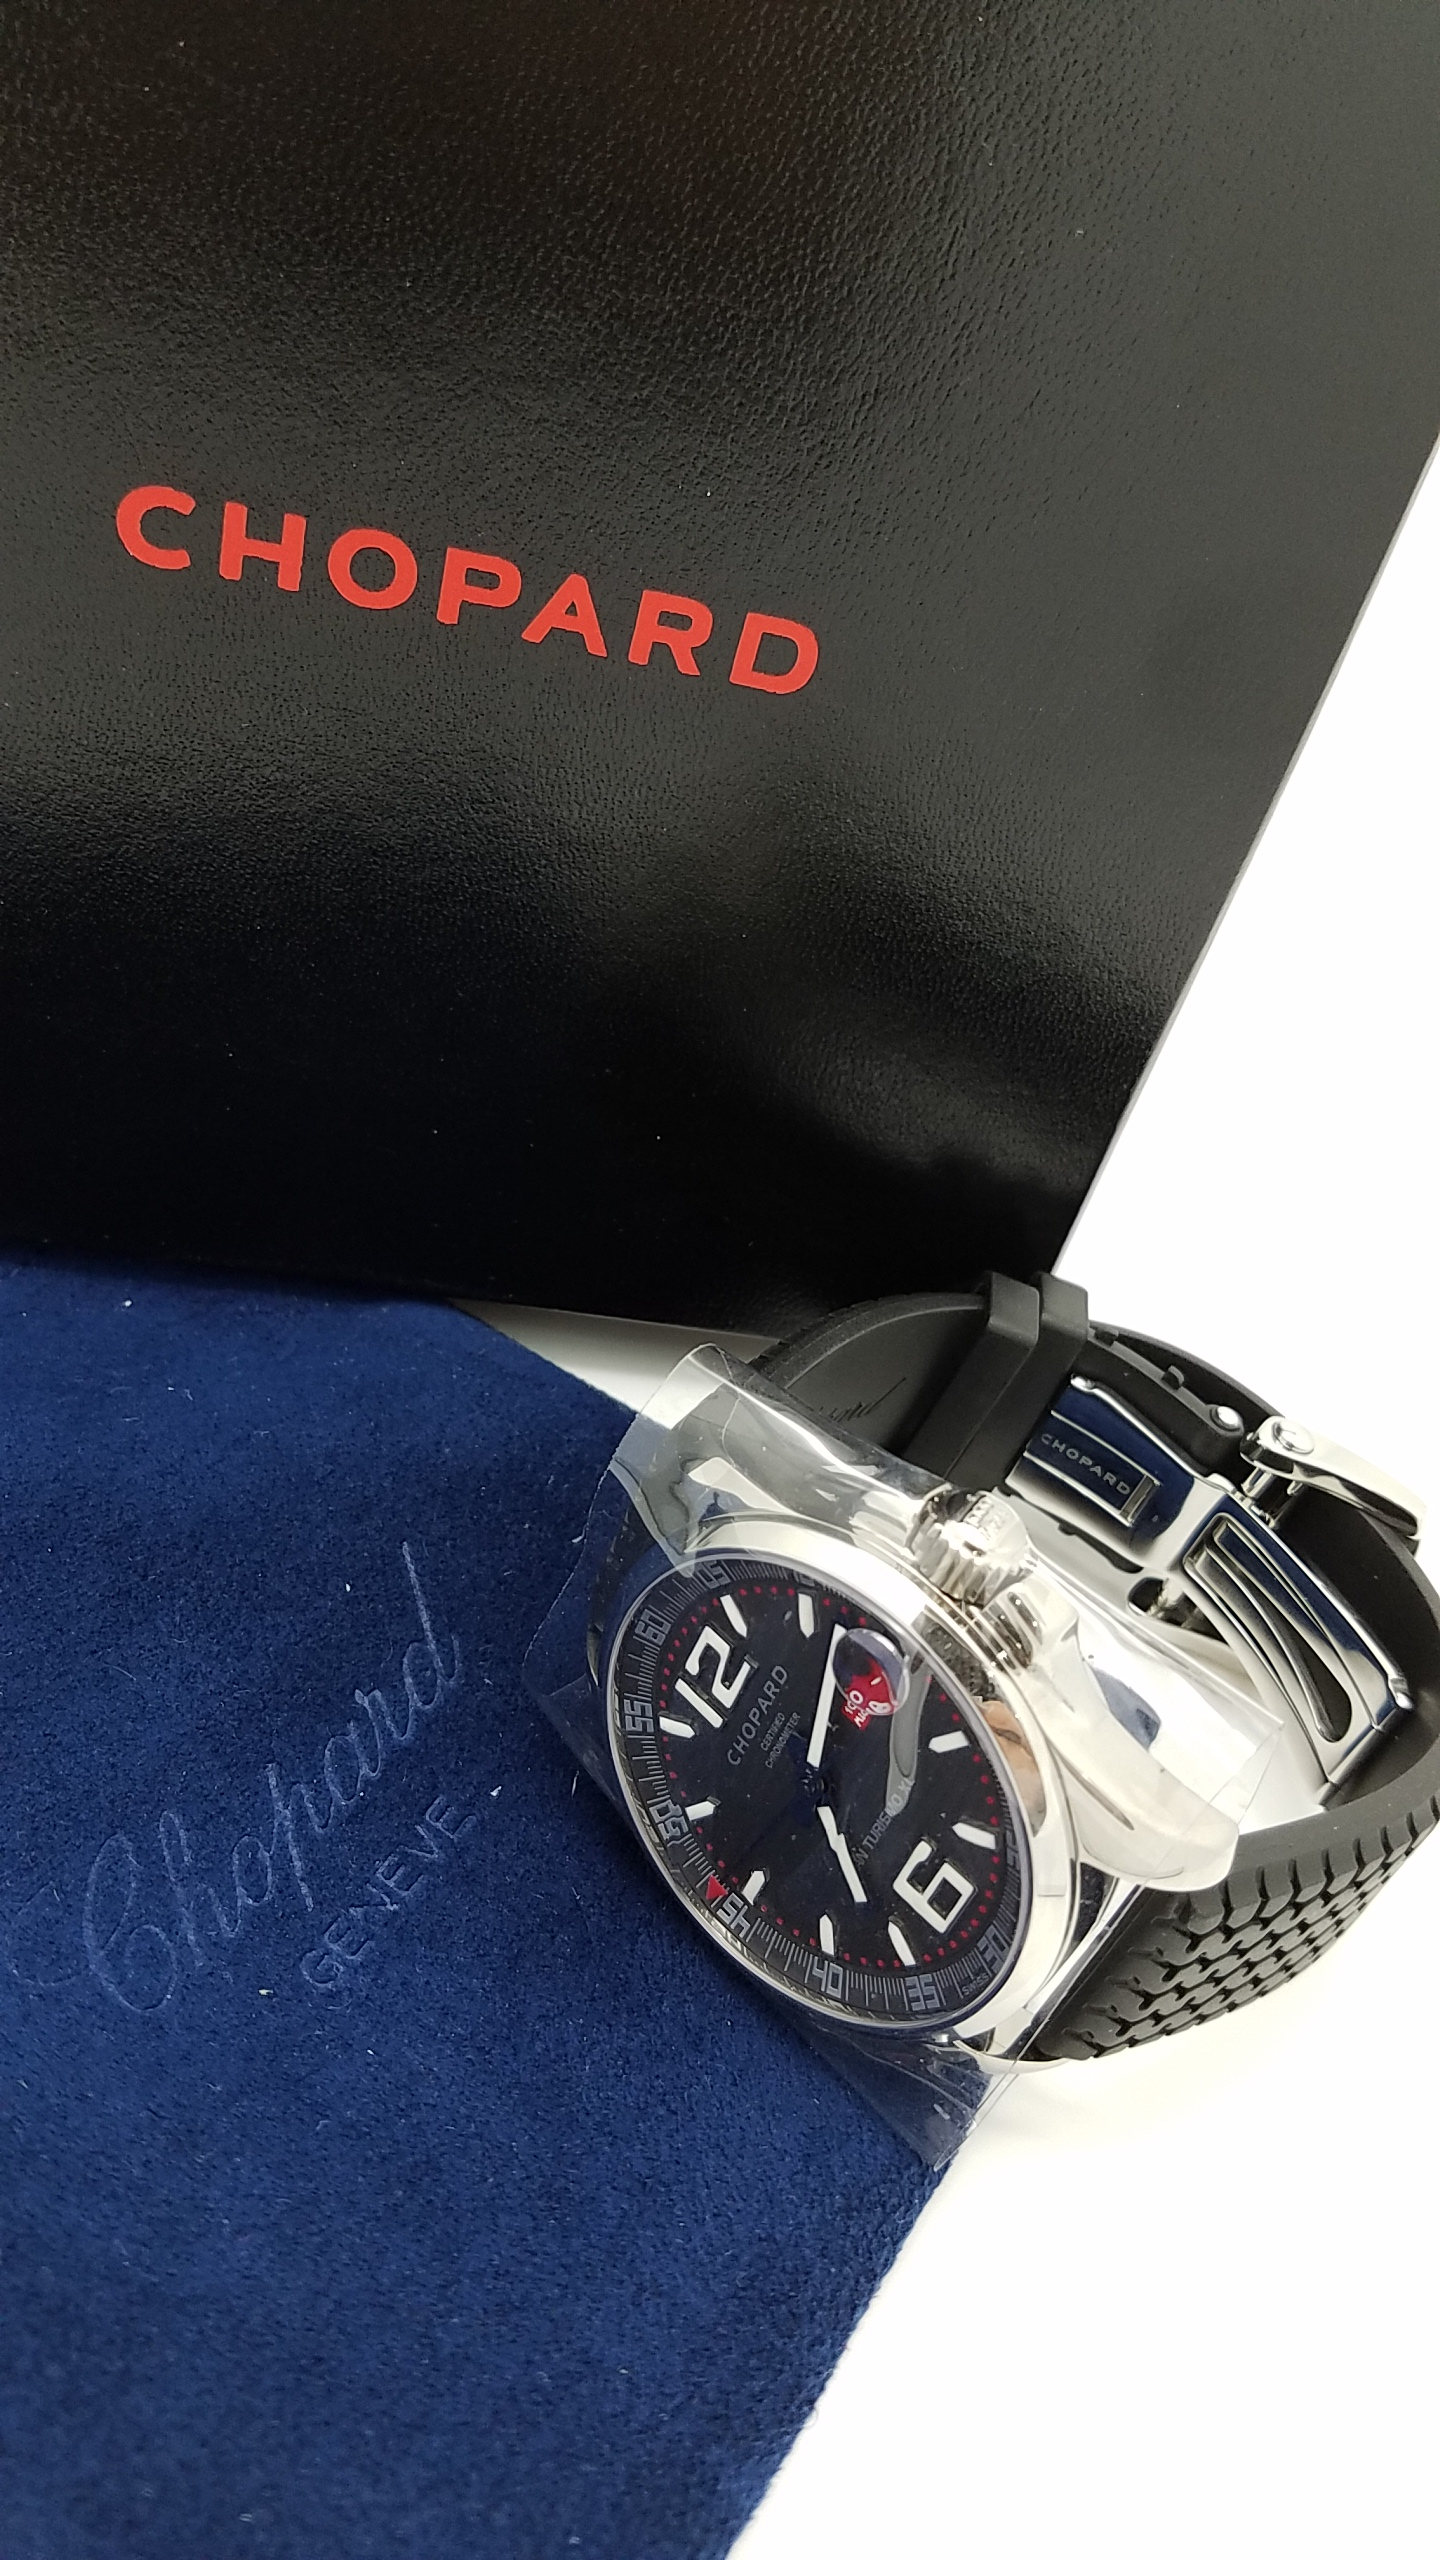 CHOPARD	Chopard Mille Miglia GT XL Light Weight Special Ed 	ref#168997 - 3005)	Stainless Steel	Silicone/Rubber		SILVER / GREY DIAL	Mechanical (Automatic) WATCH